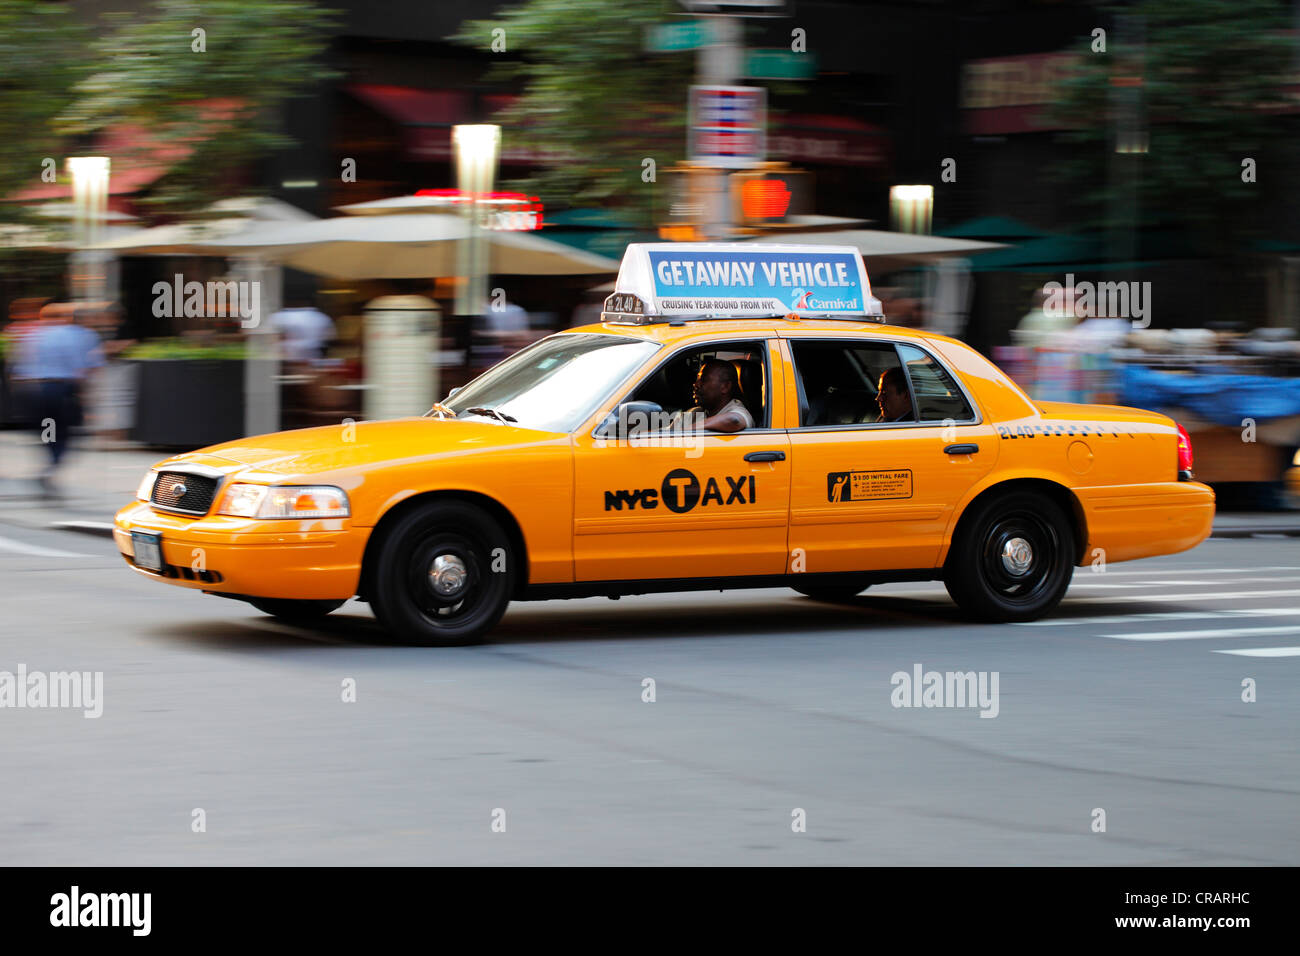 new york taxi stock photos new york taxi stock images. Black Bedroom Furniture Sets. Home Design Ideas